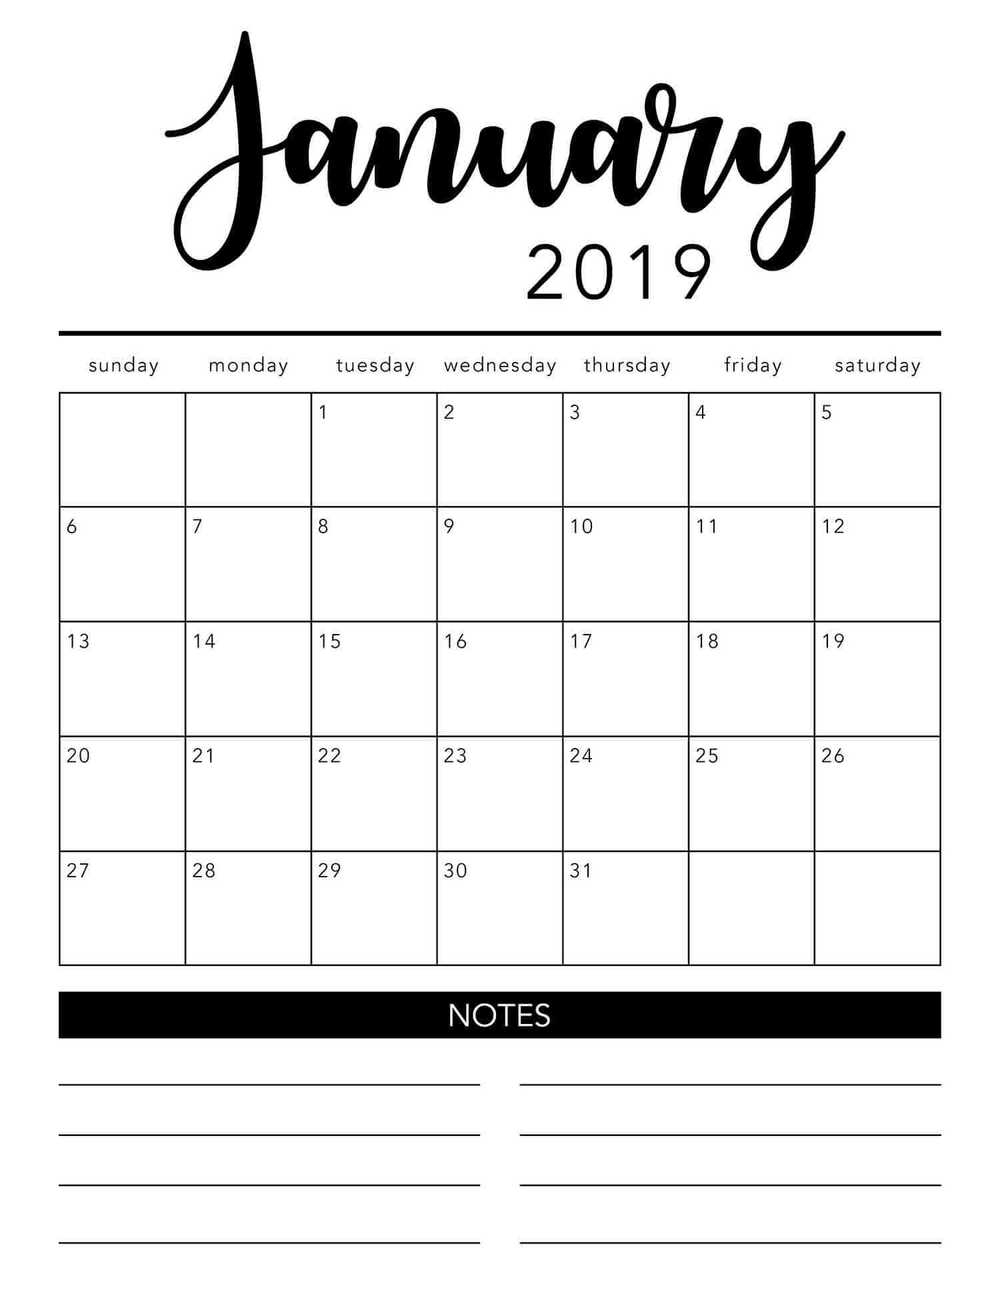 Free 2019 Printable Calendar Template (2 Colors!) - I Heart Naptime within Monthly Calendar Template Kids